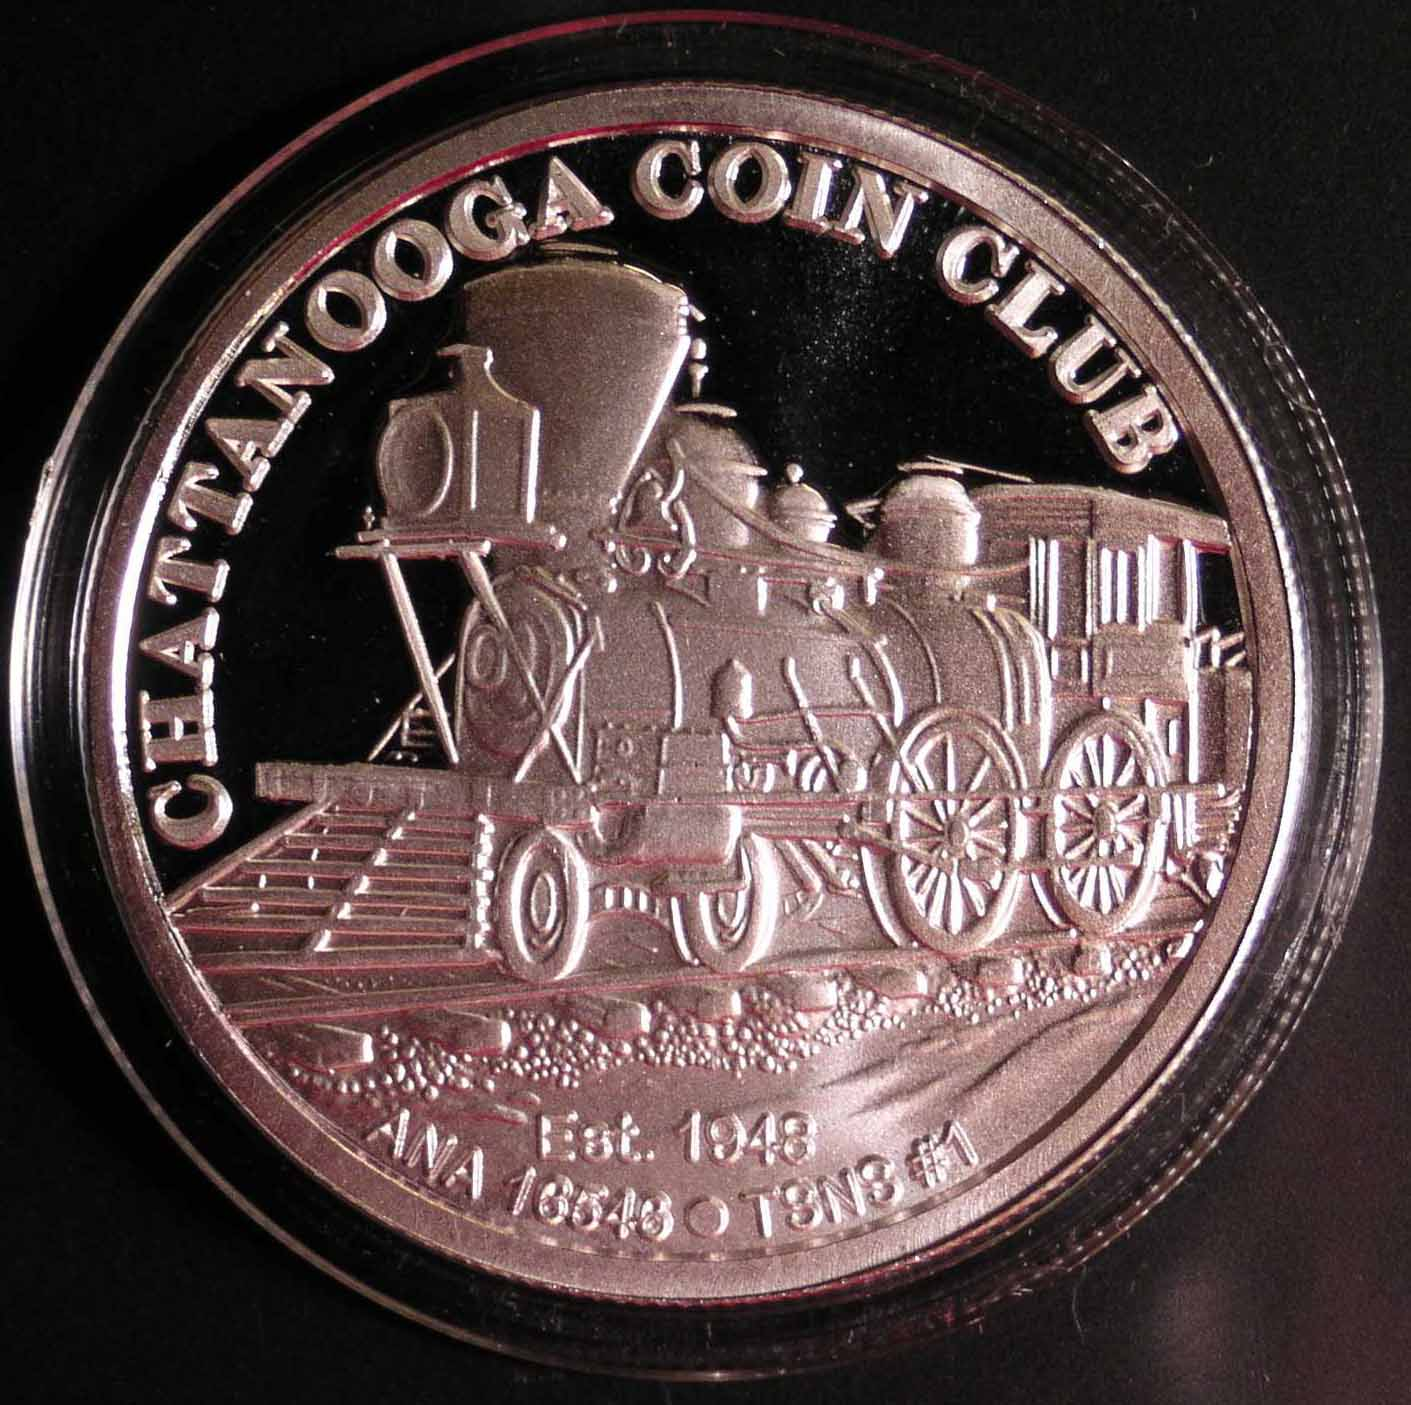 Club 50th Anniversery Medal